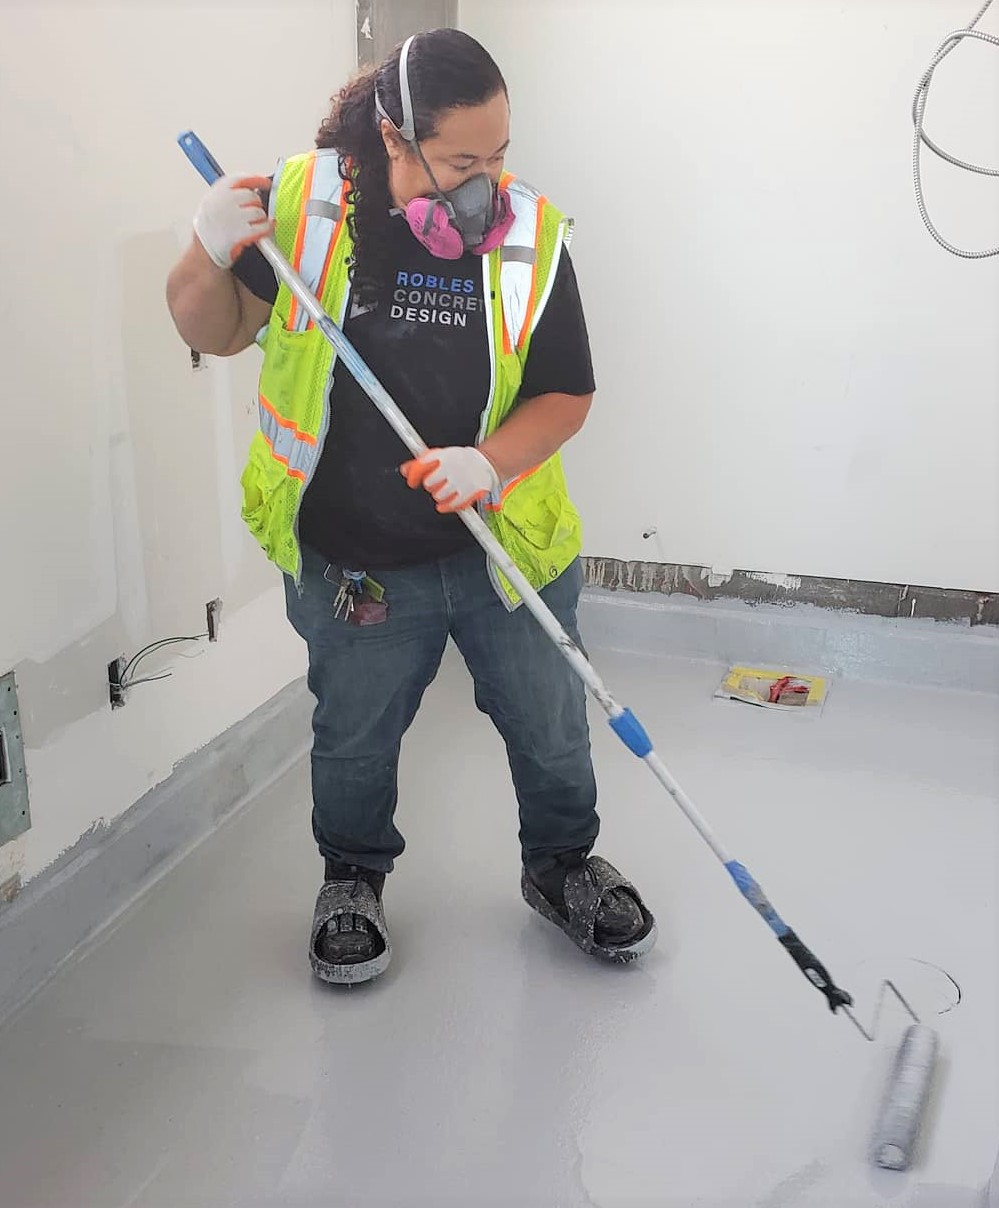 Concrete contractor Kimberley Robles puts a concrete finish into a grocery store in San Fran.